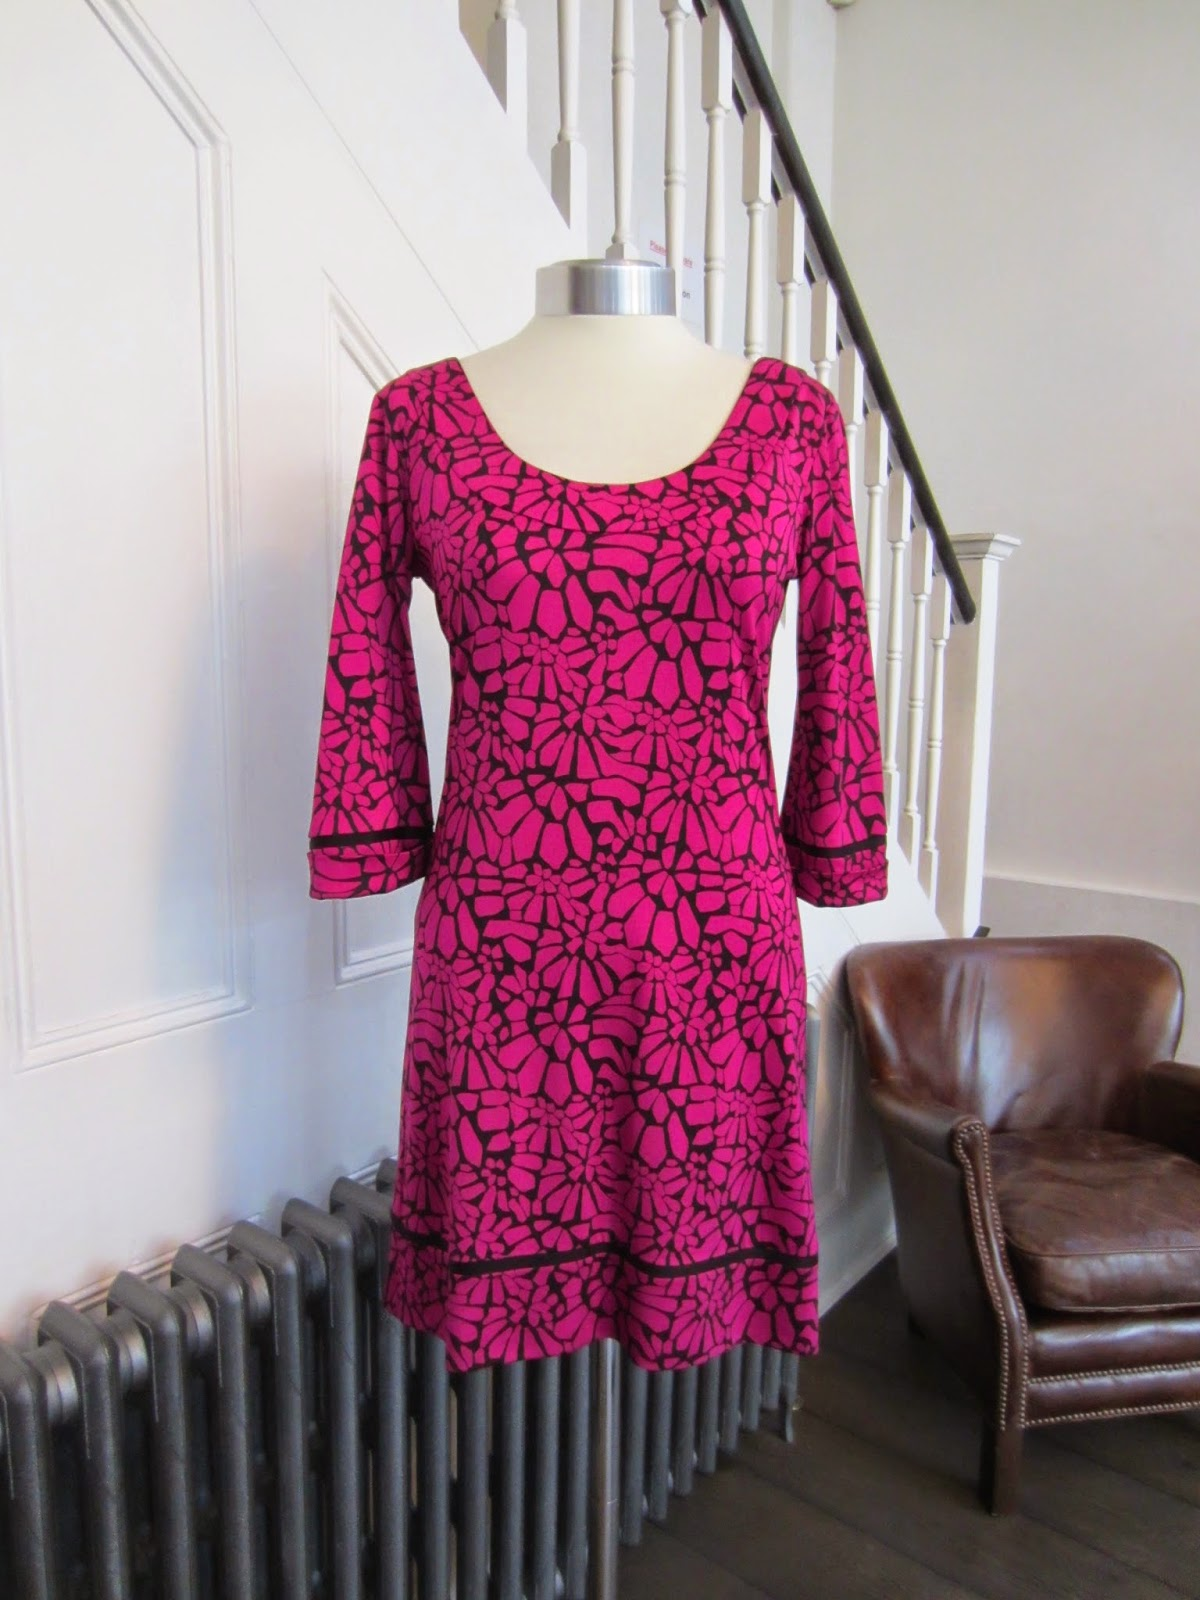 Diane Von Furstenberg Pink & Black Dress